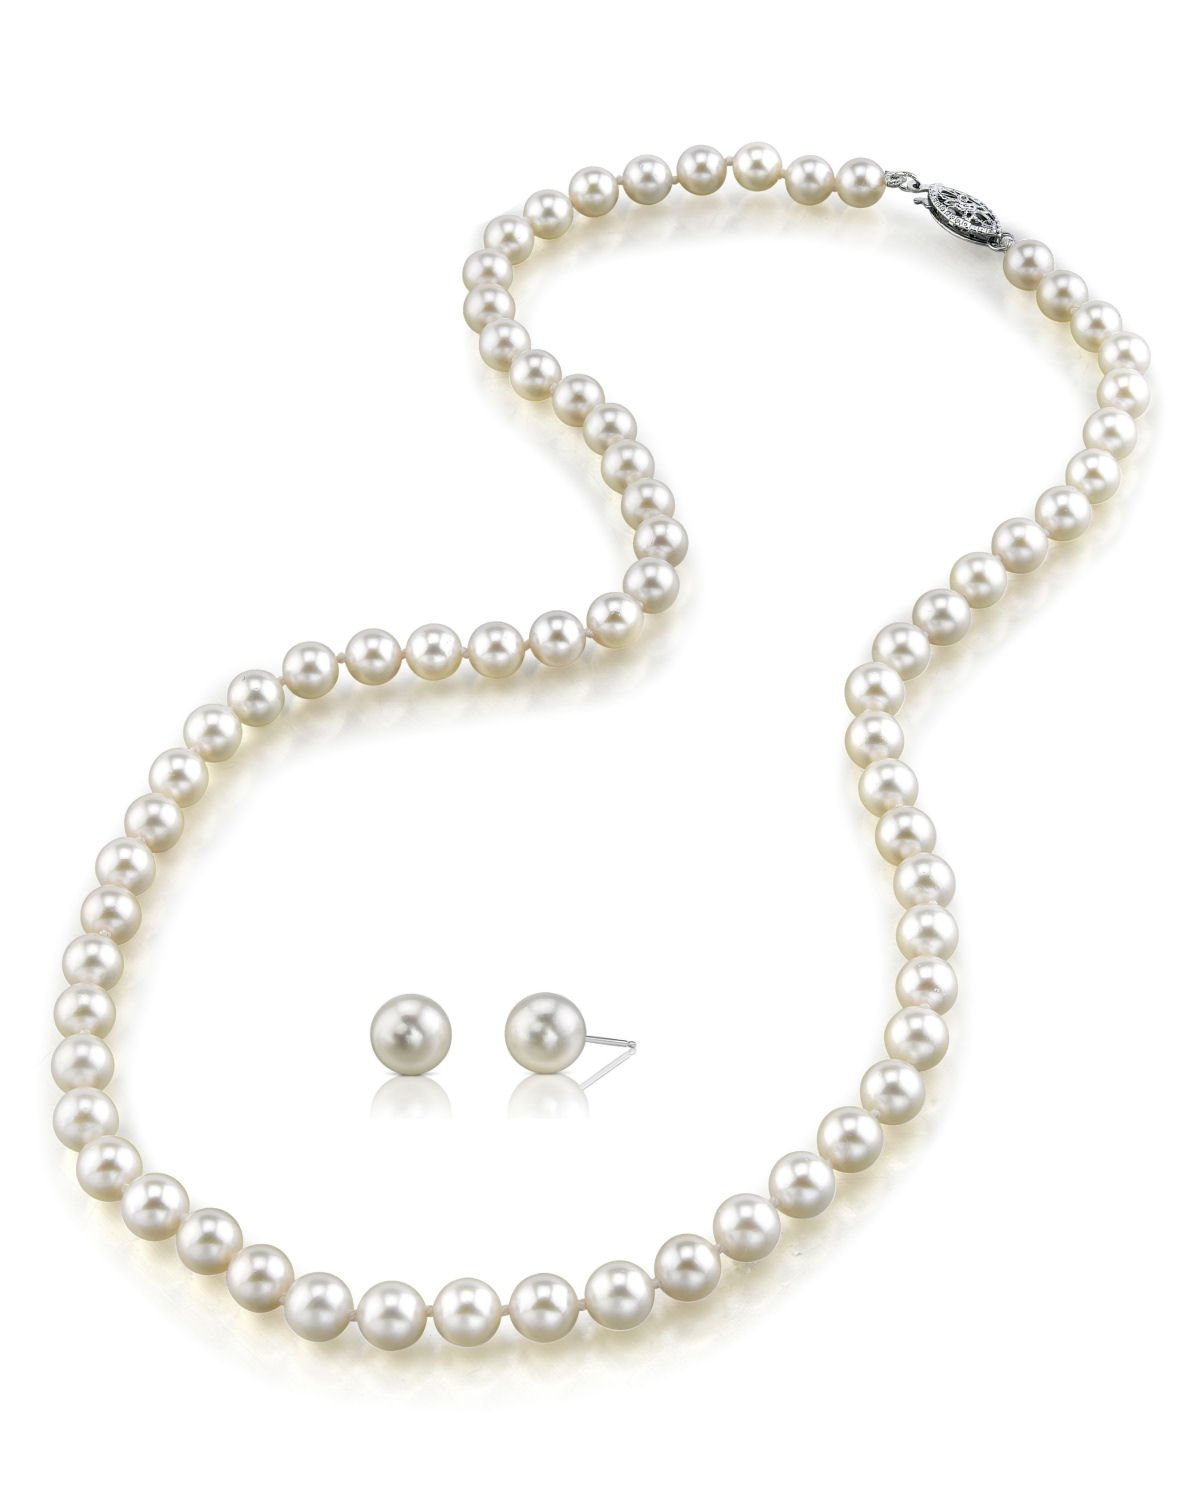 14K Gold 7.5-8.0mm Japanese Akoya White Cultured Pearl Necklace & Earrings Set, 18'' Length - AA+ Quality